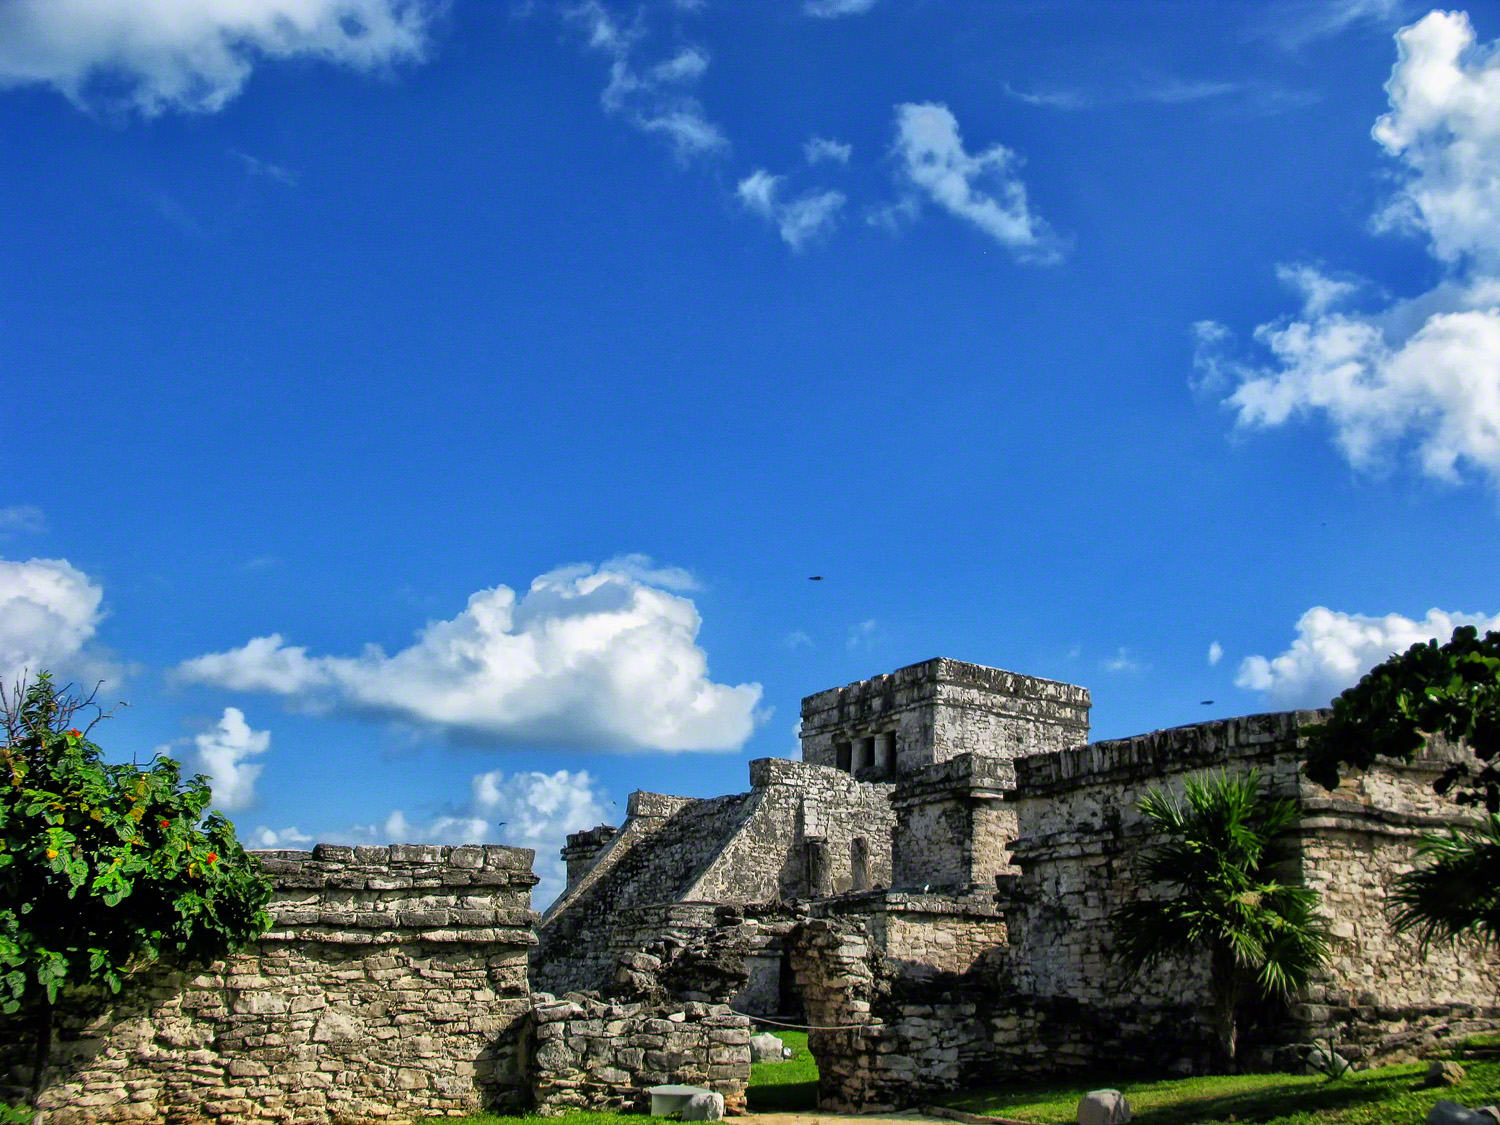 Several building stages created the Mayan Style Castle.